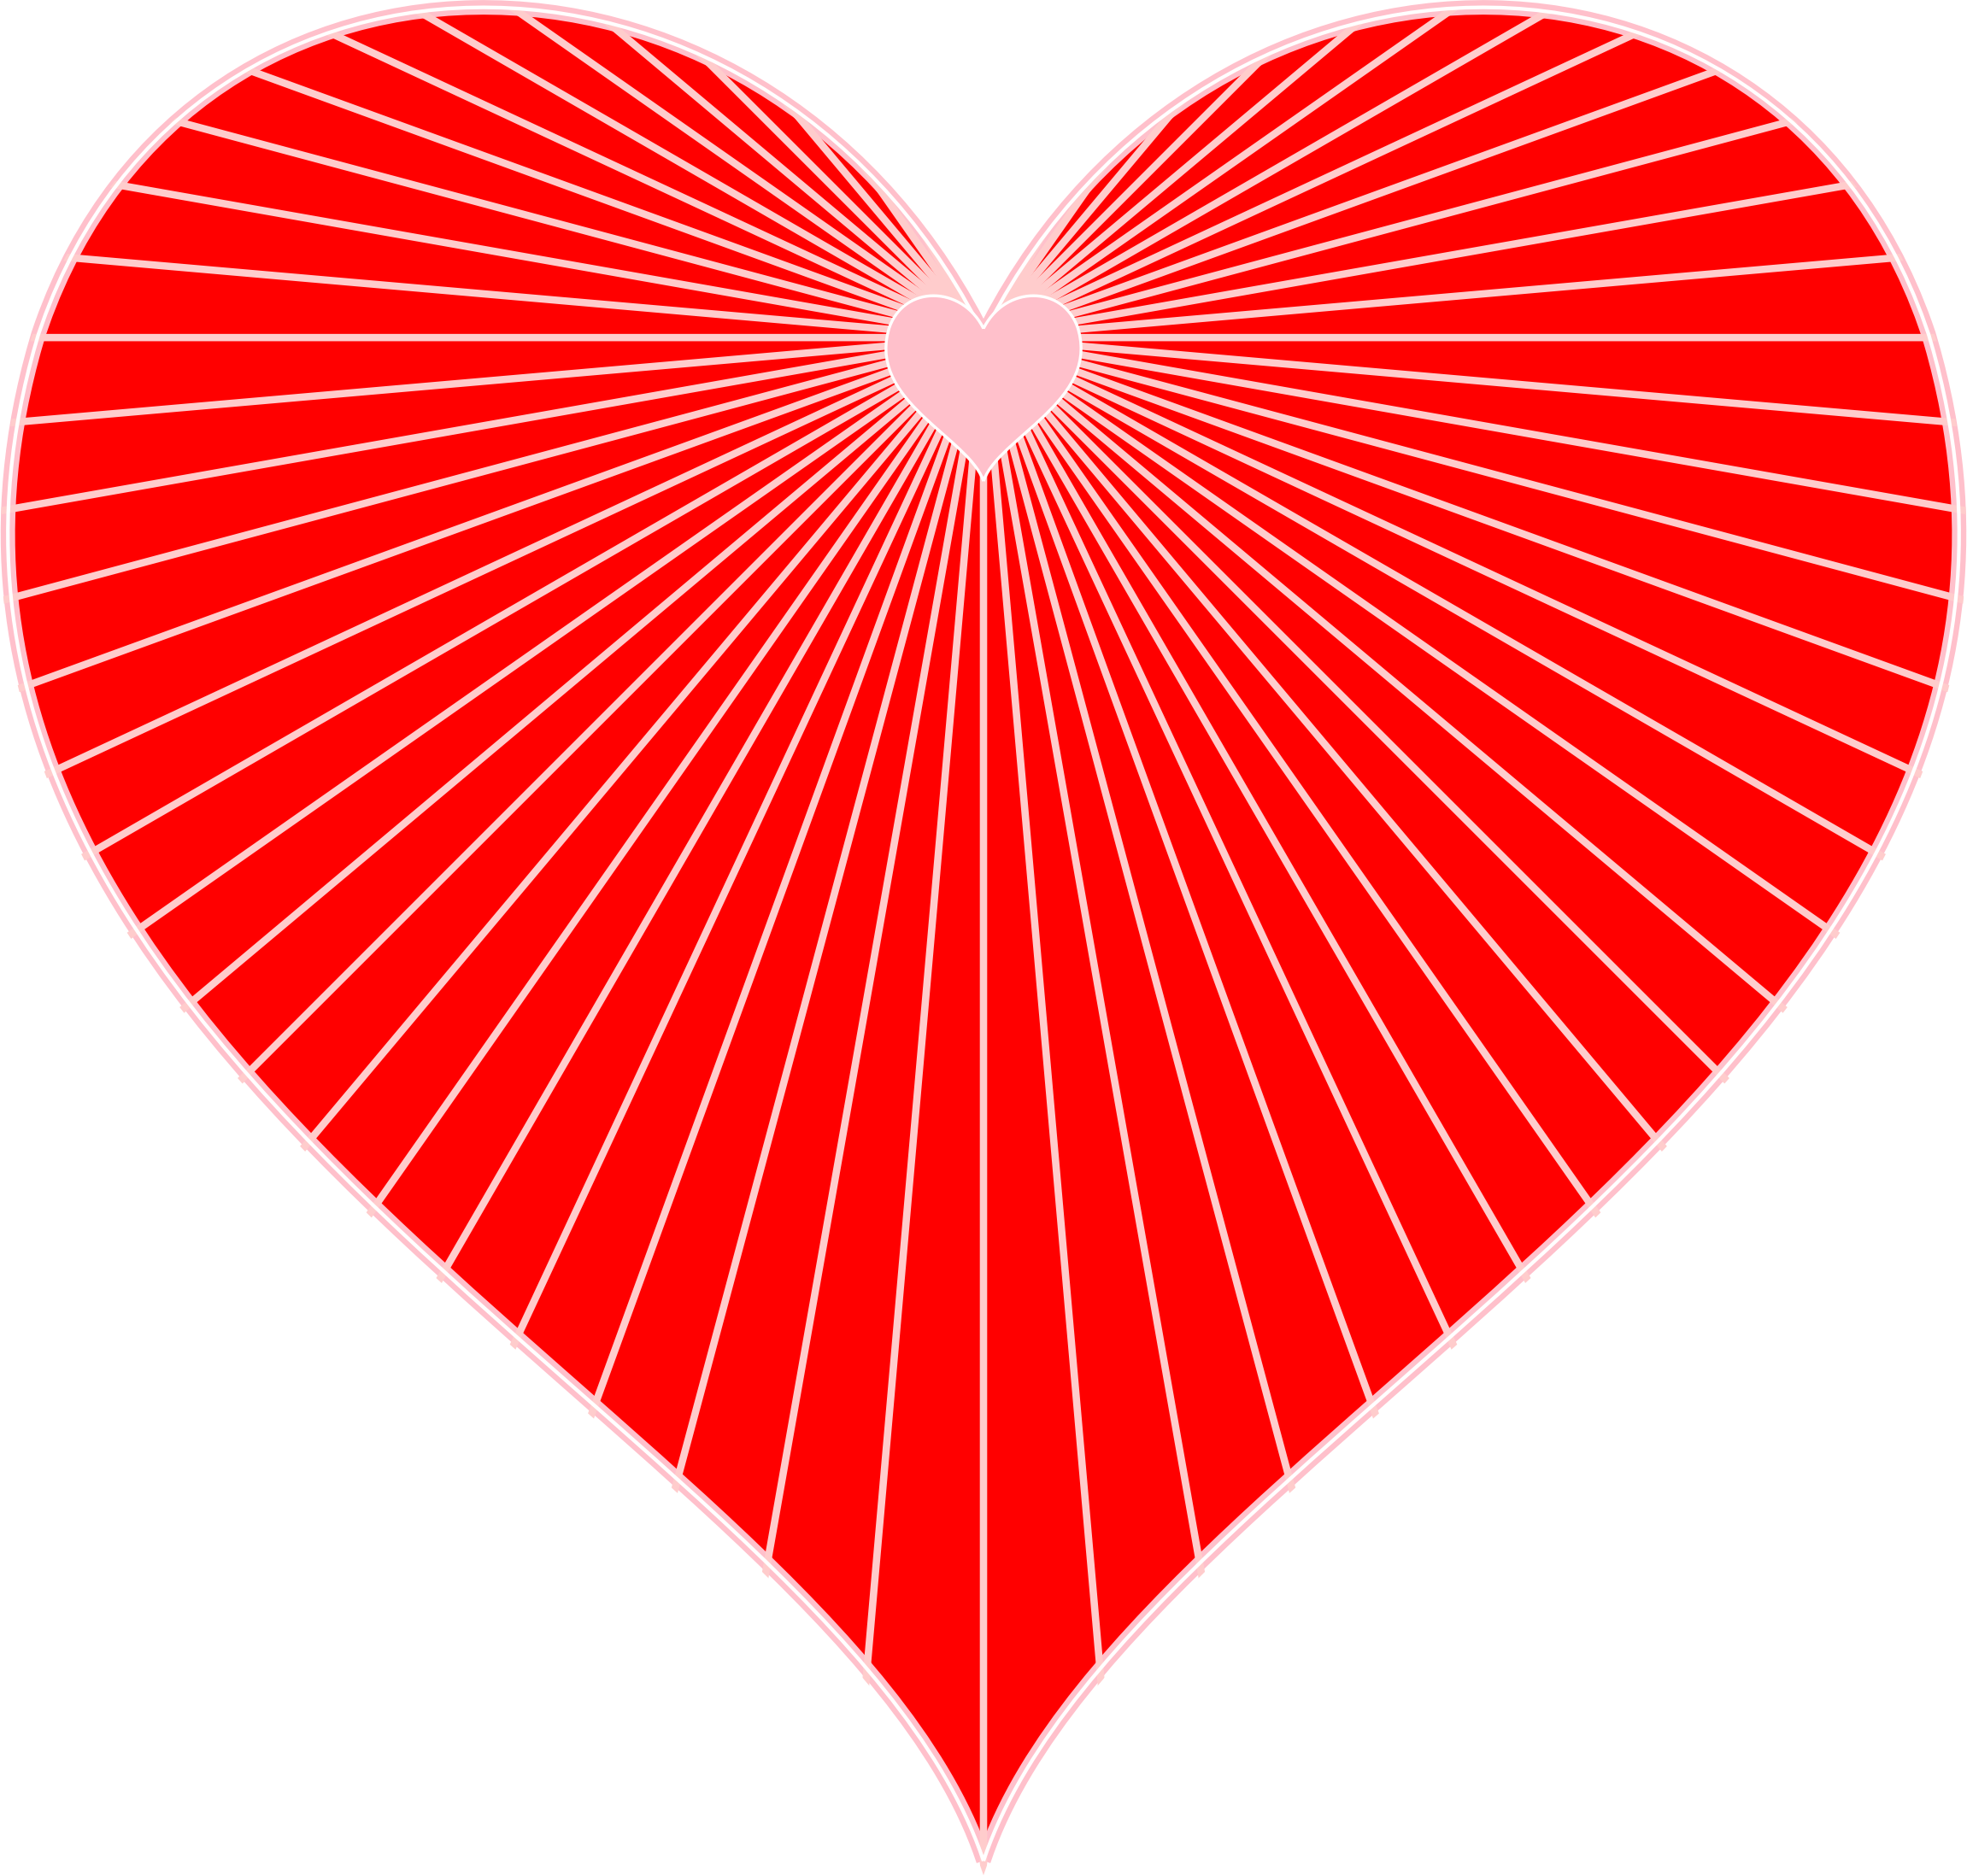 String art. Heartbeat clipart heart vector